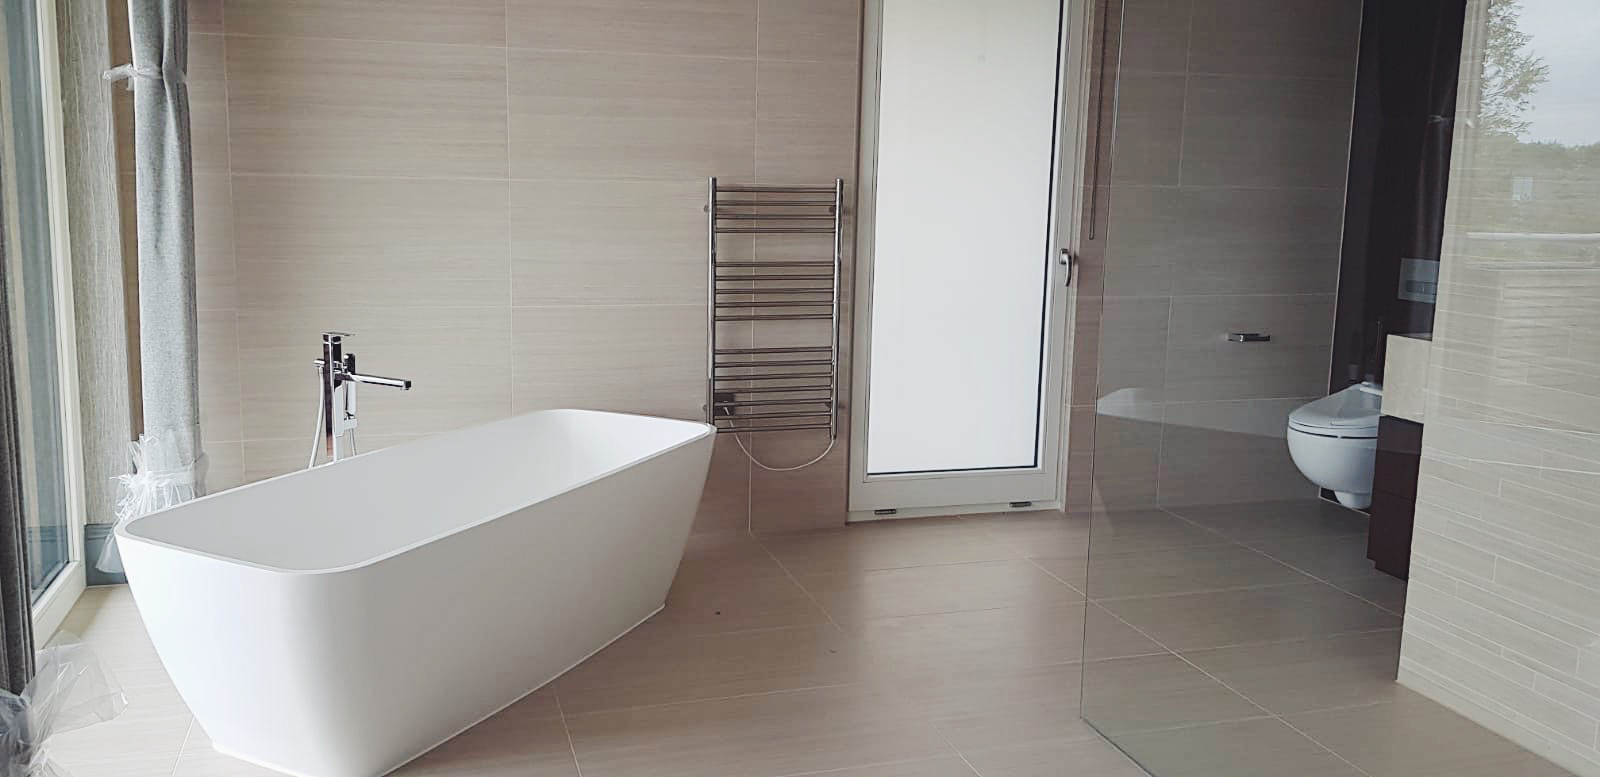 Newly installed luxury Bathroom - Sept 2019.